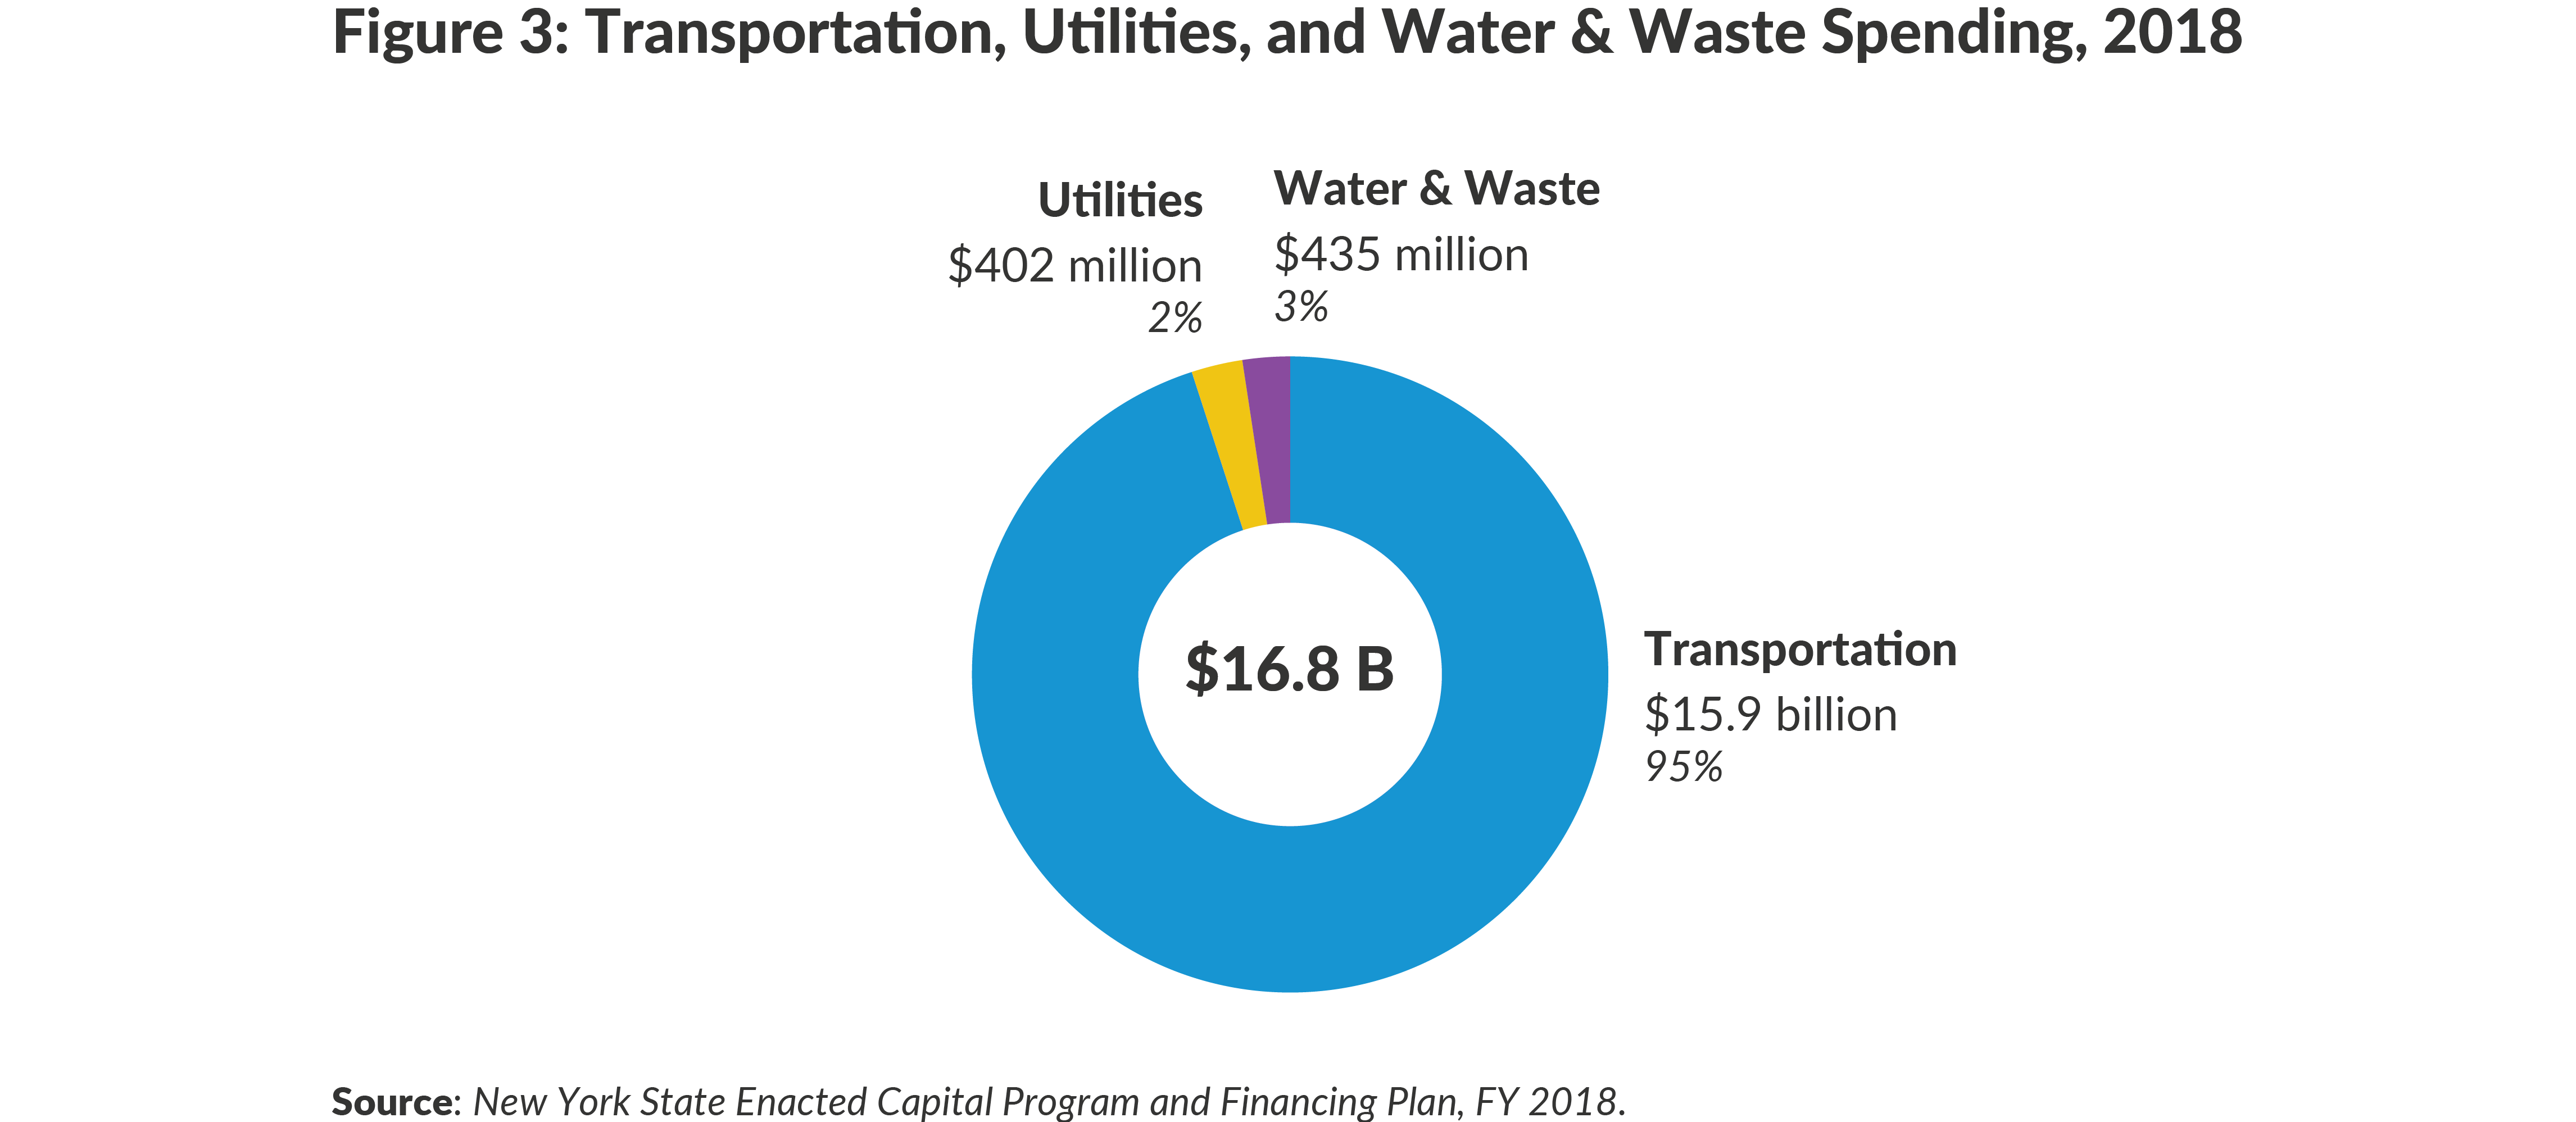 Figure 3: Transportation, Utilities, and Water & Waste Spending, 2018